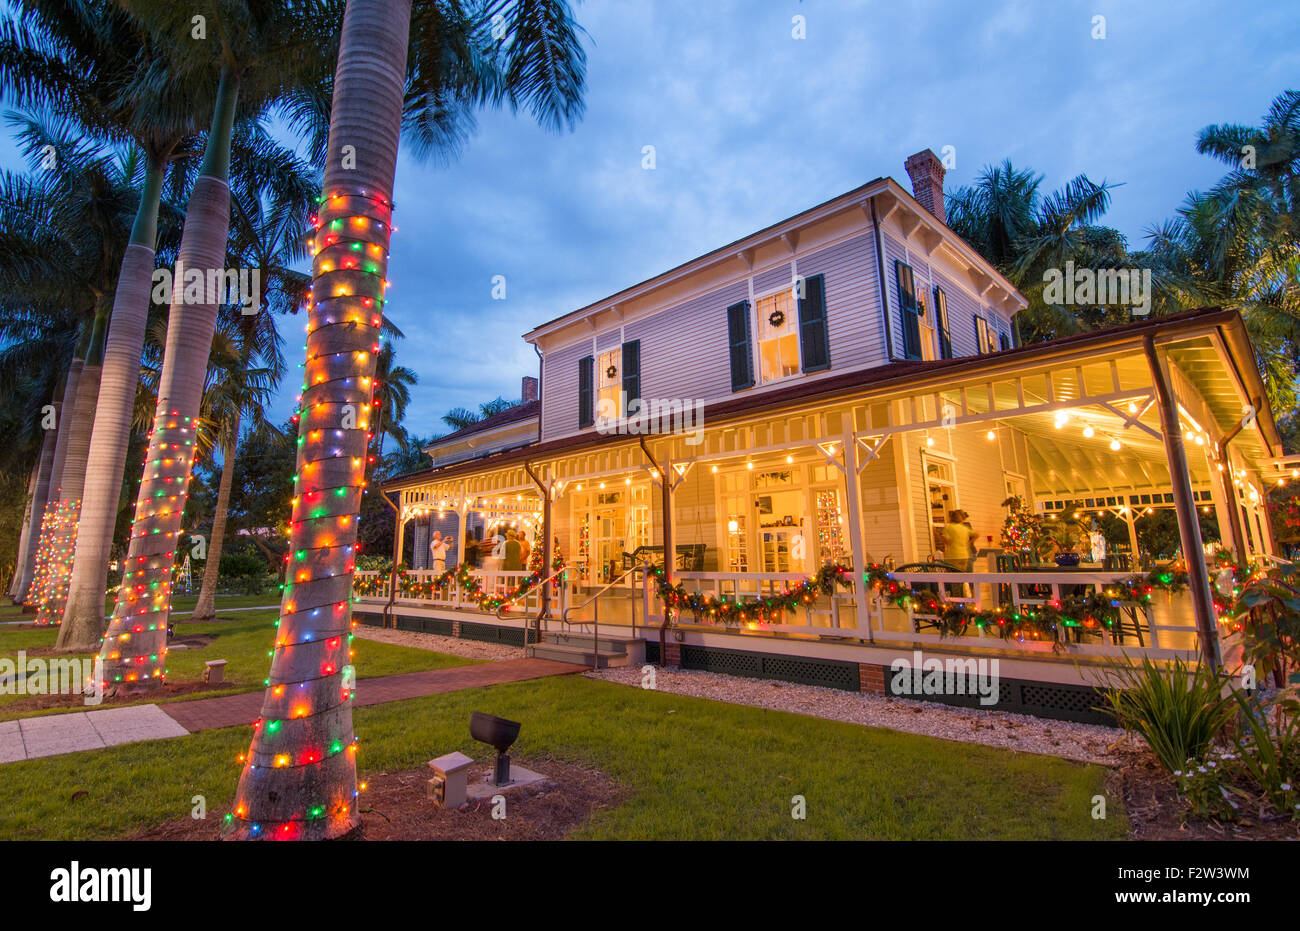 Edison Summer Home Florida Christmas 2020 Thomas Edison inventor home and museum in Ft Myers Florida